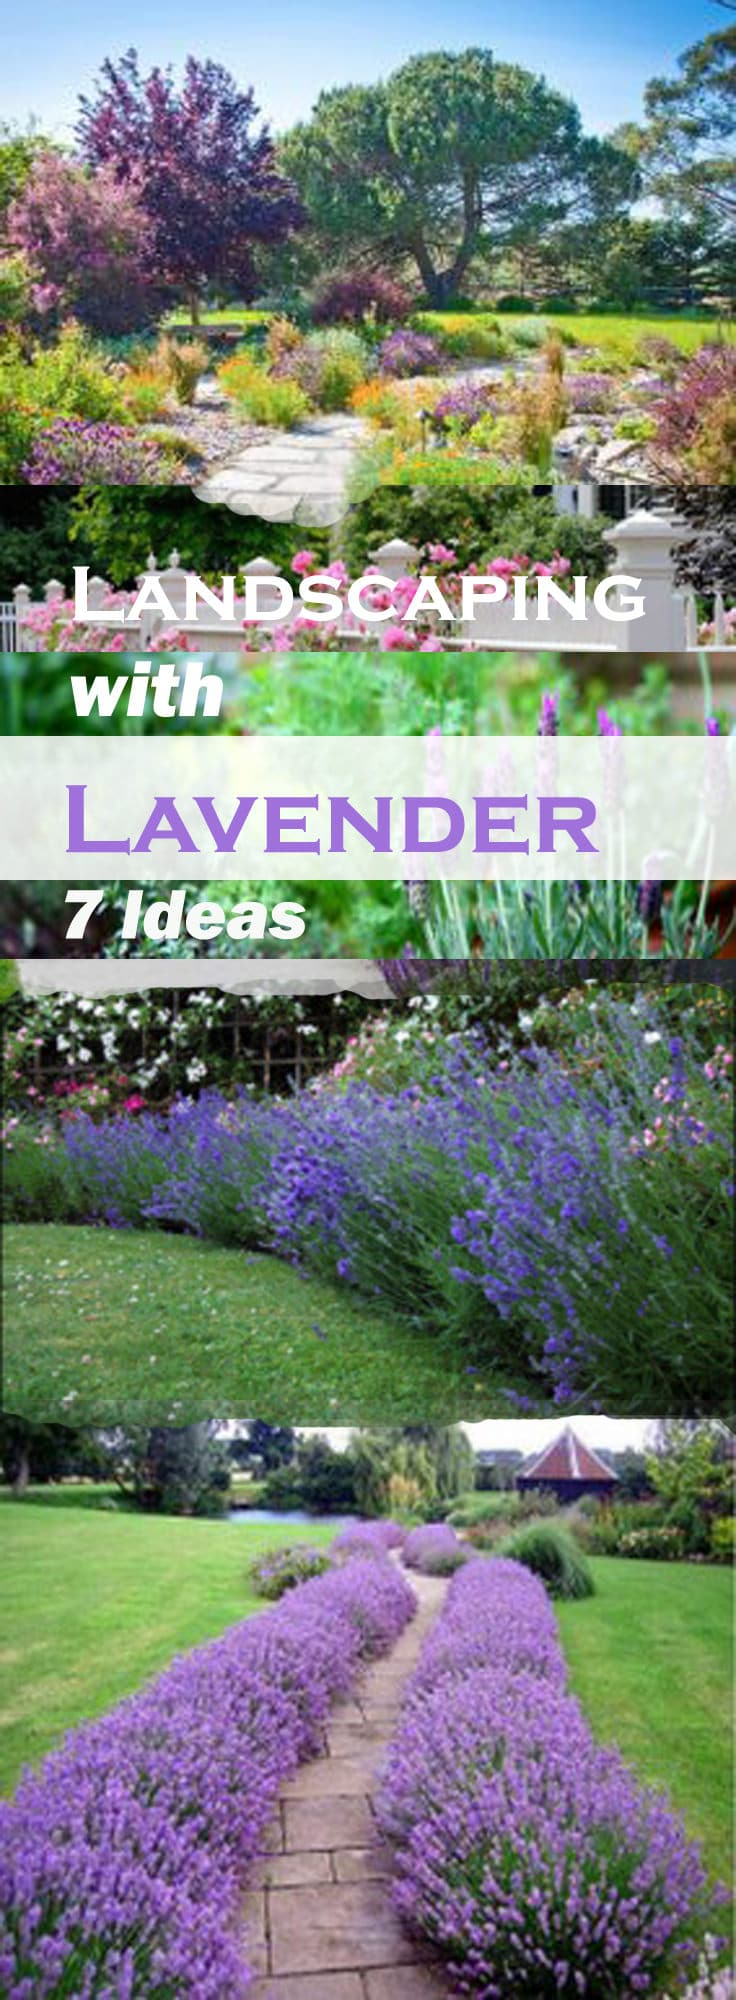 Landscaping with Lavender | 7 Garden Design Ideas